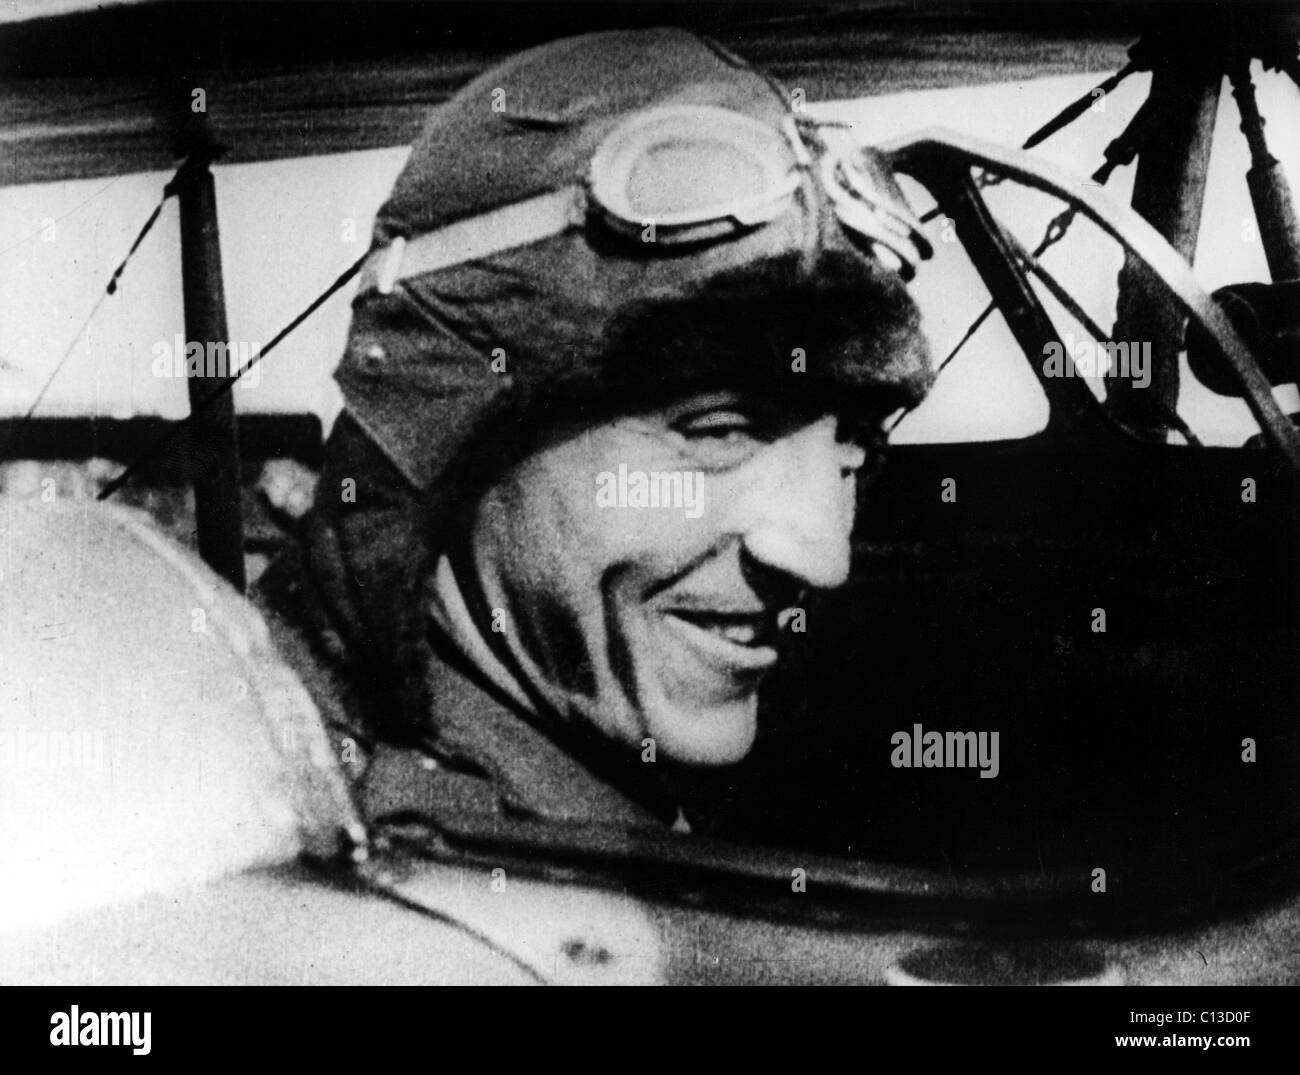 eddie rickenbacker Captain eddie rickenbacker consider it luck, skill, or just plain determination: captain eddie rickenbacker survived, by his own count, 135 brushes with death before finally succumbing at the respectable age of 82.